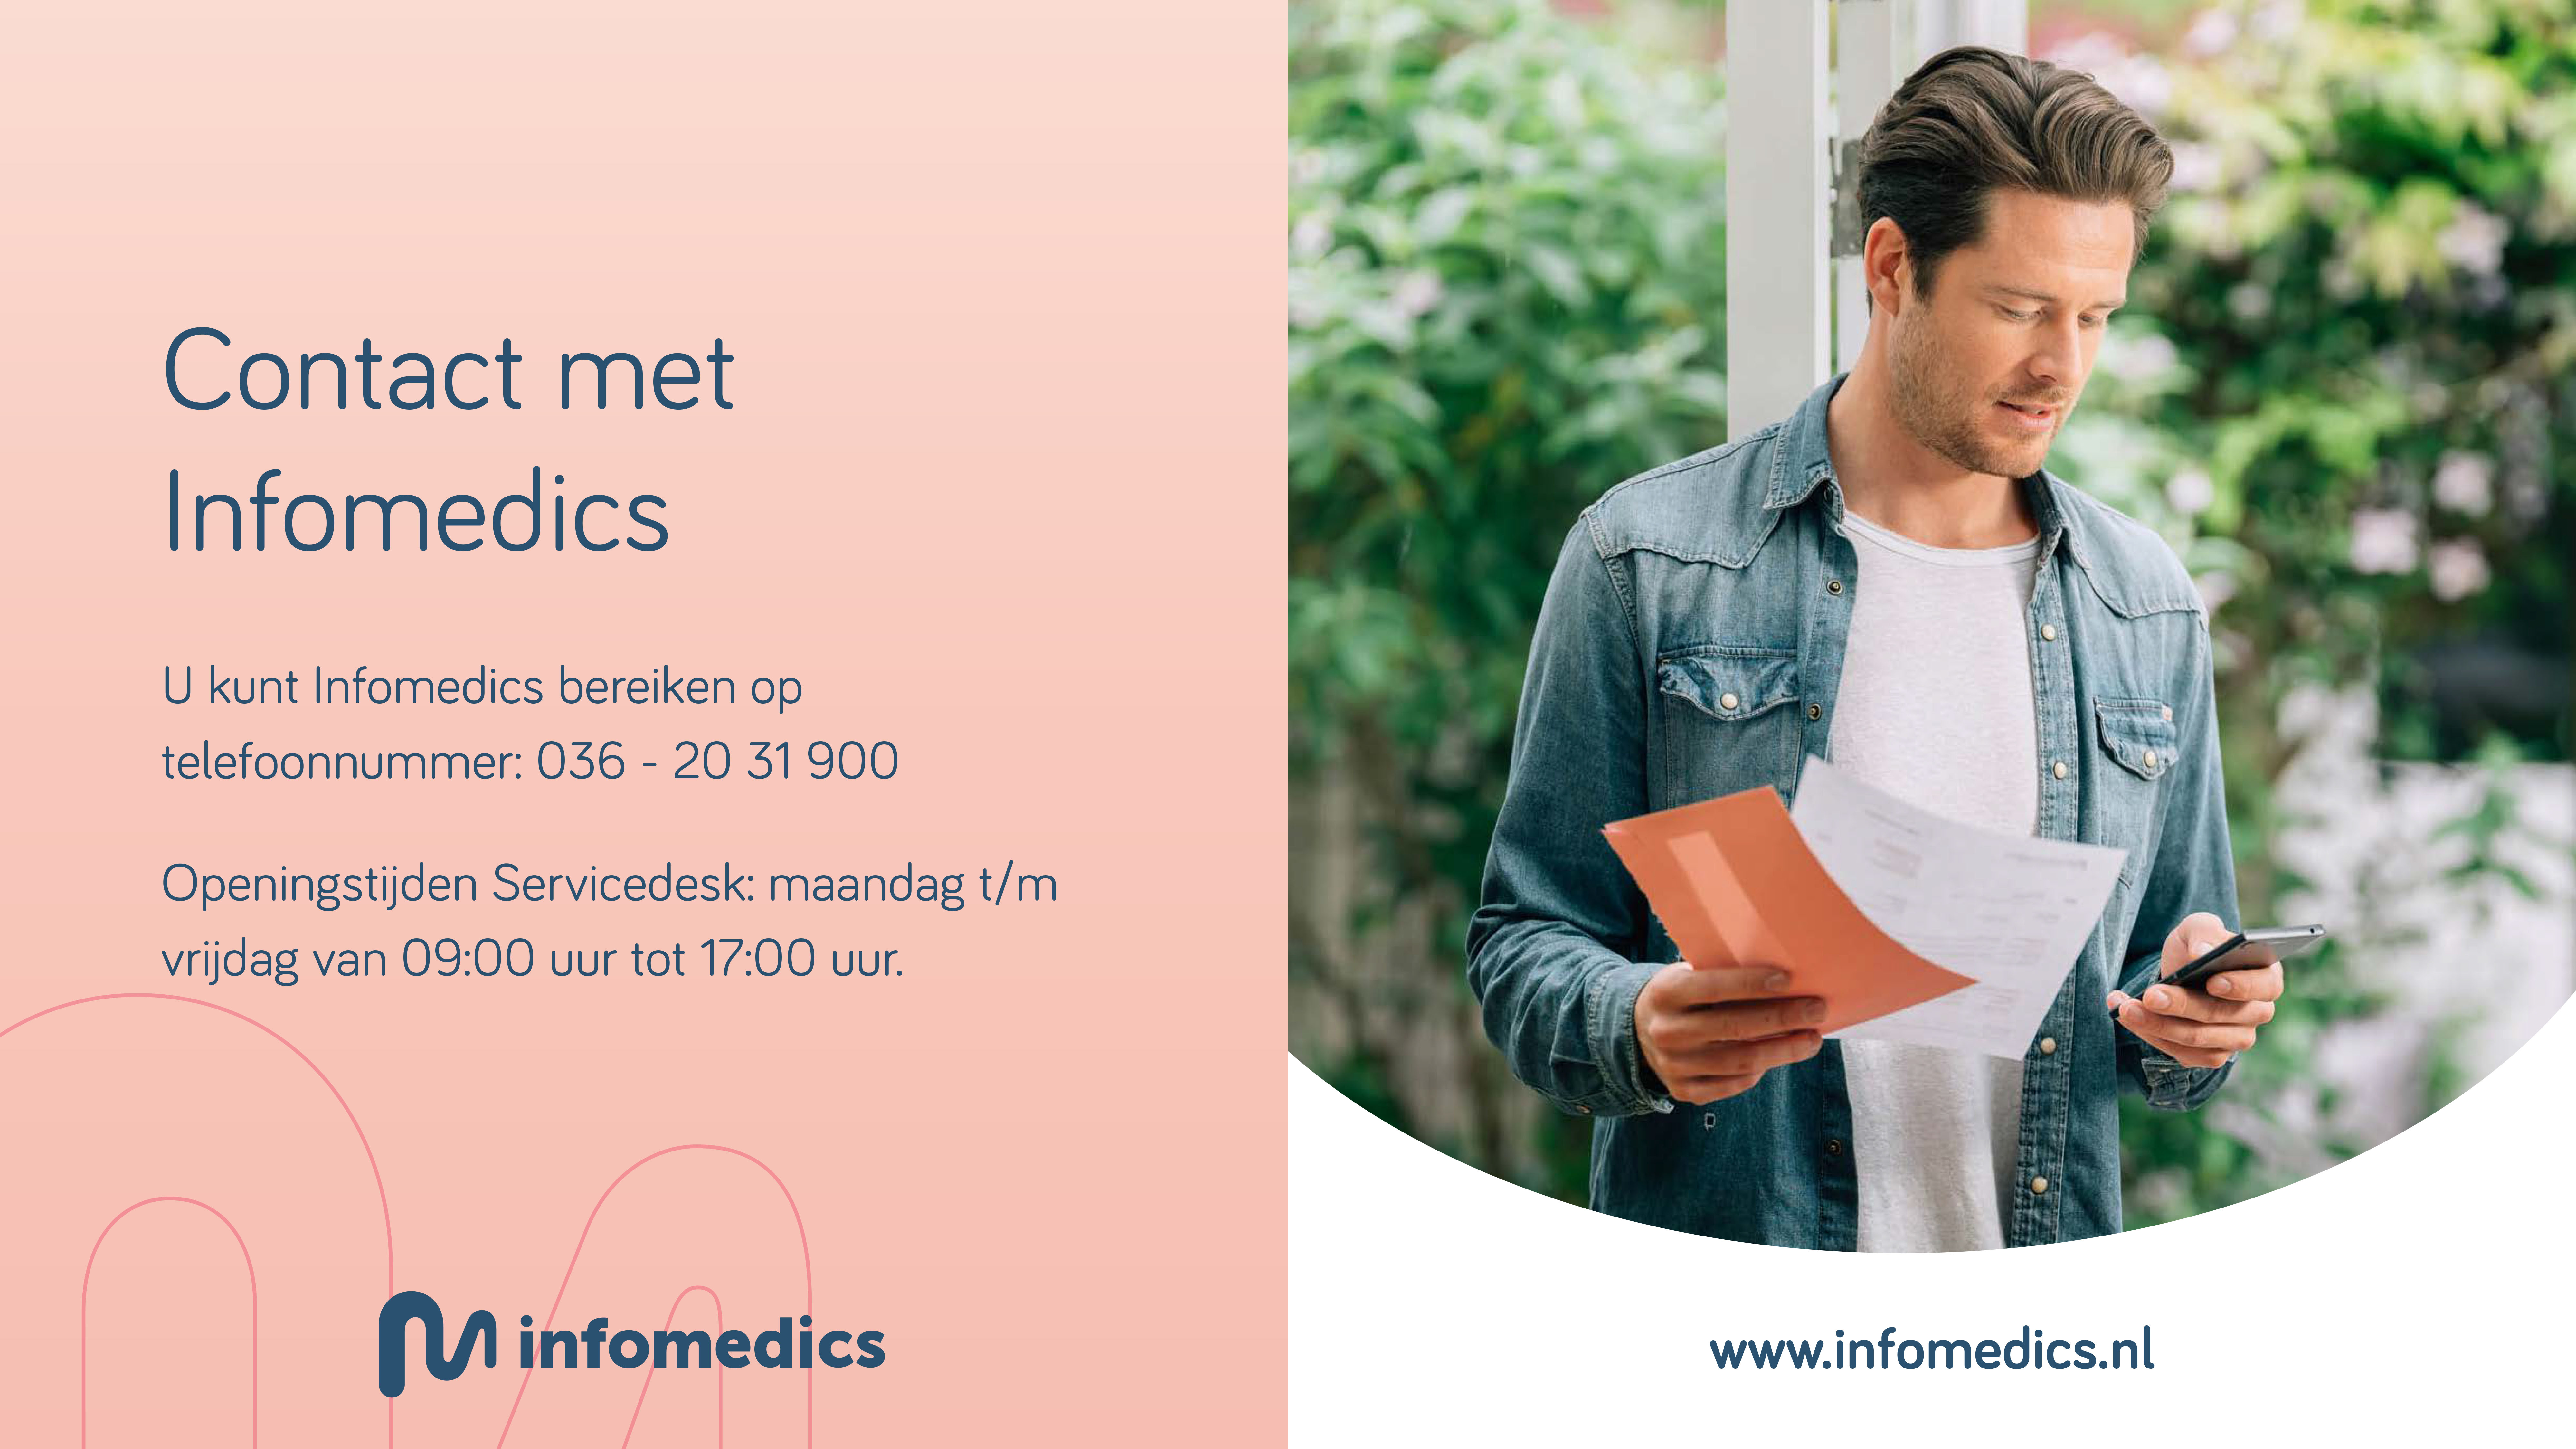 07 - Contact met Infomedics